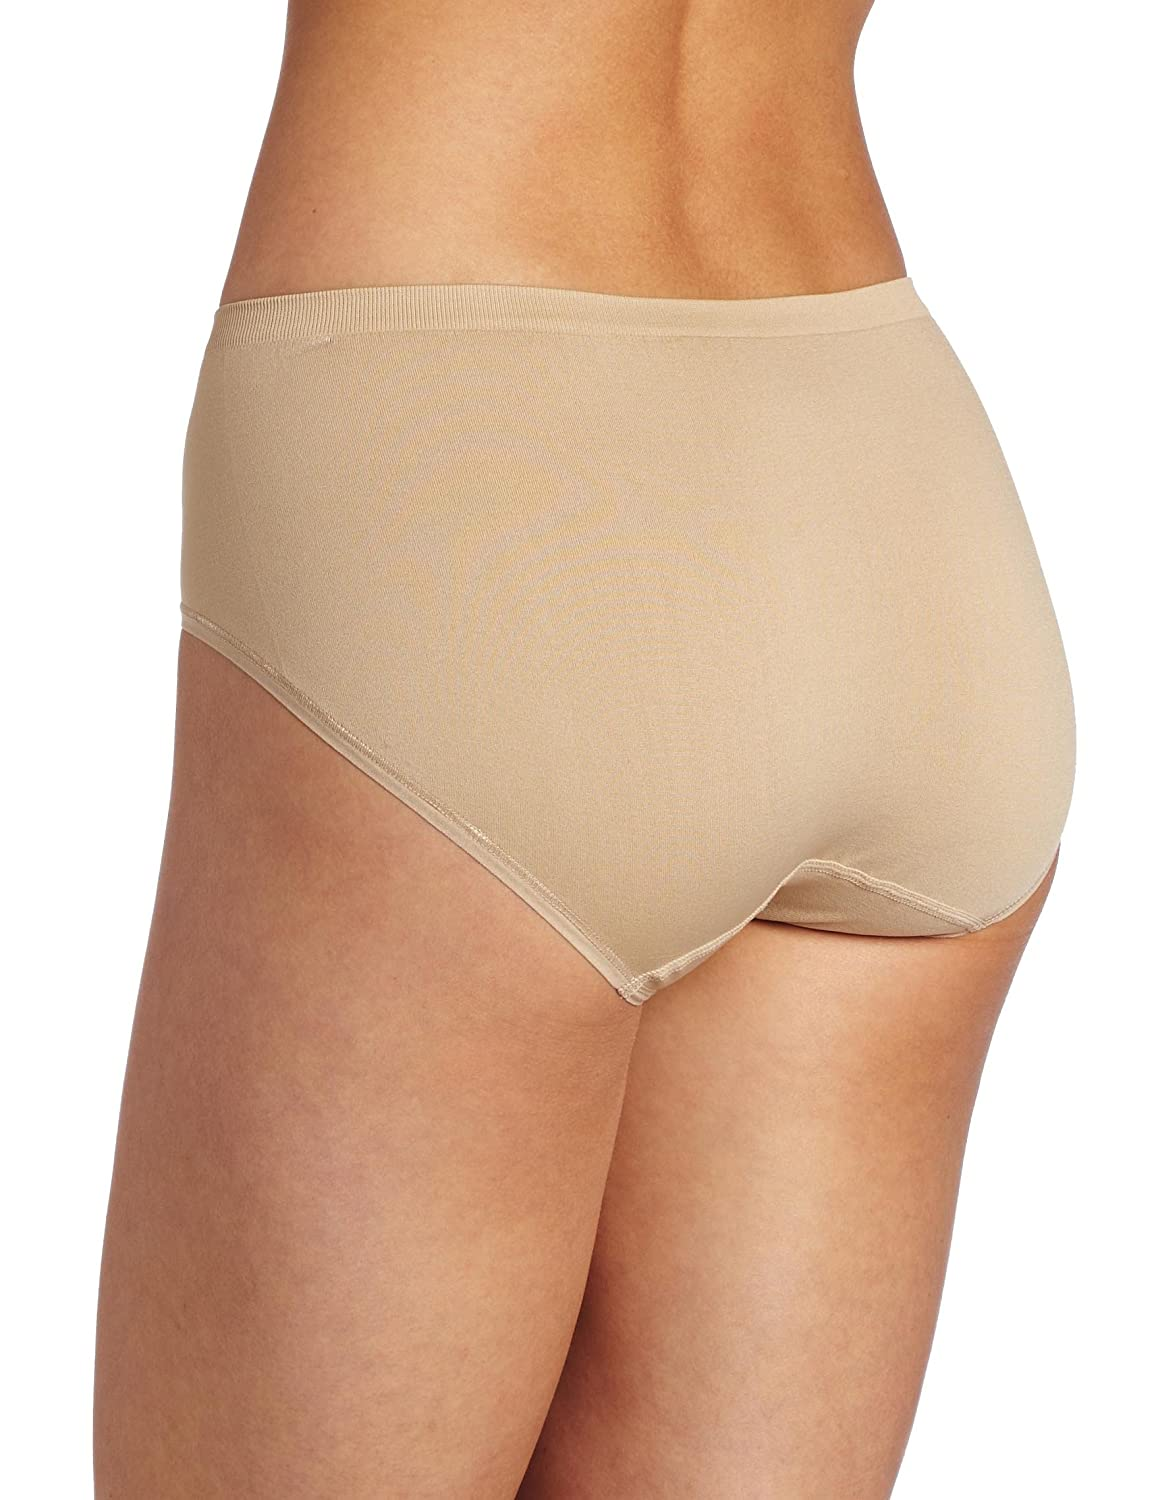 24385b374f30 Vanity Fair Women's Seamless Hipster Panty 18210 - Damask Neutral - 5 at  Amazon Women's Clothing store: